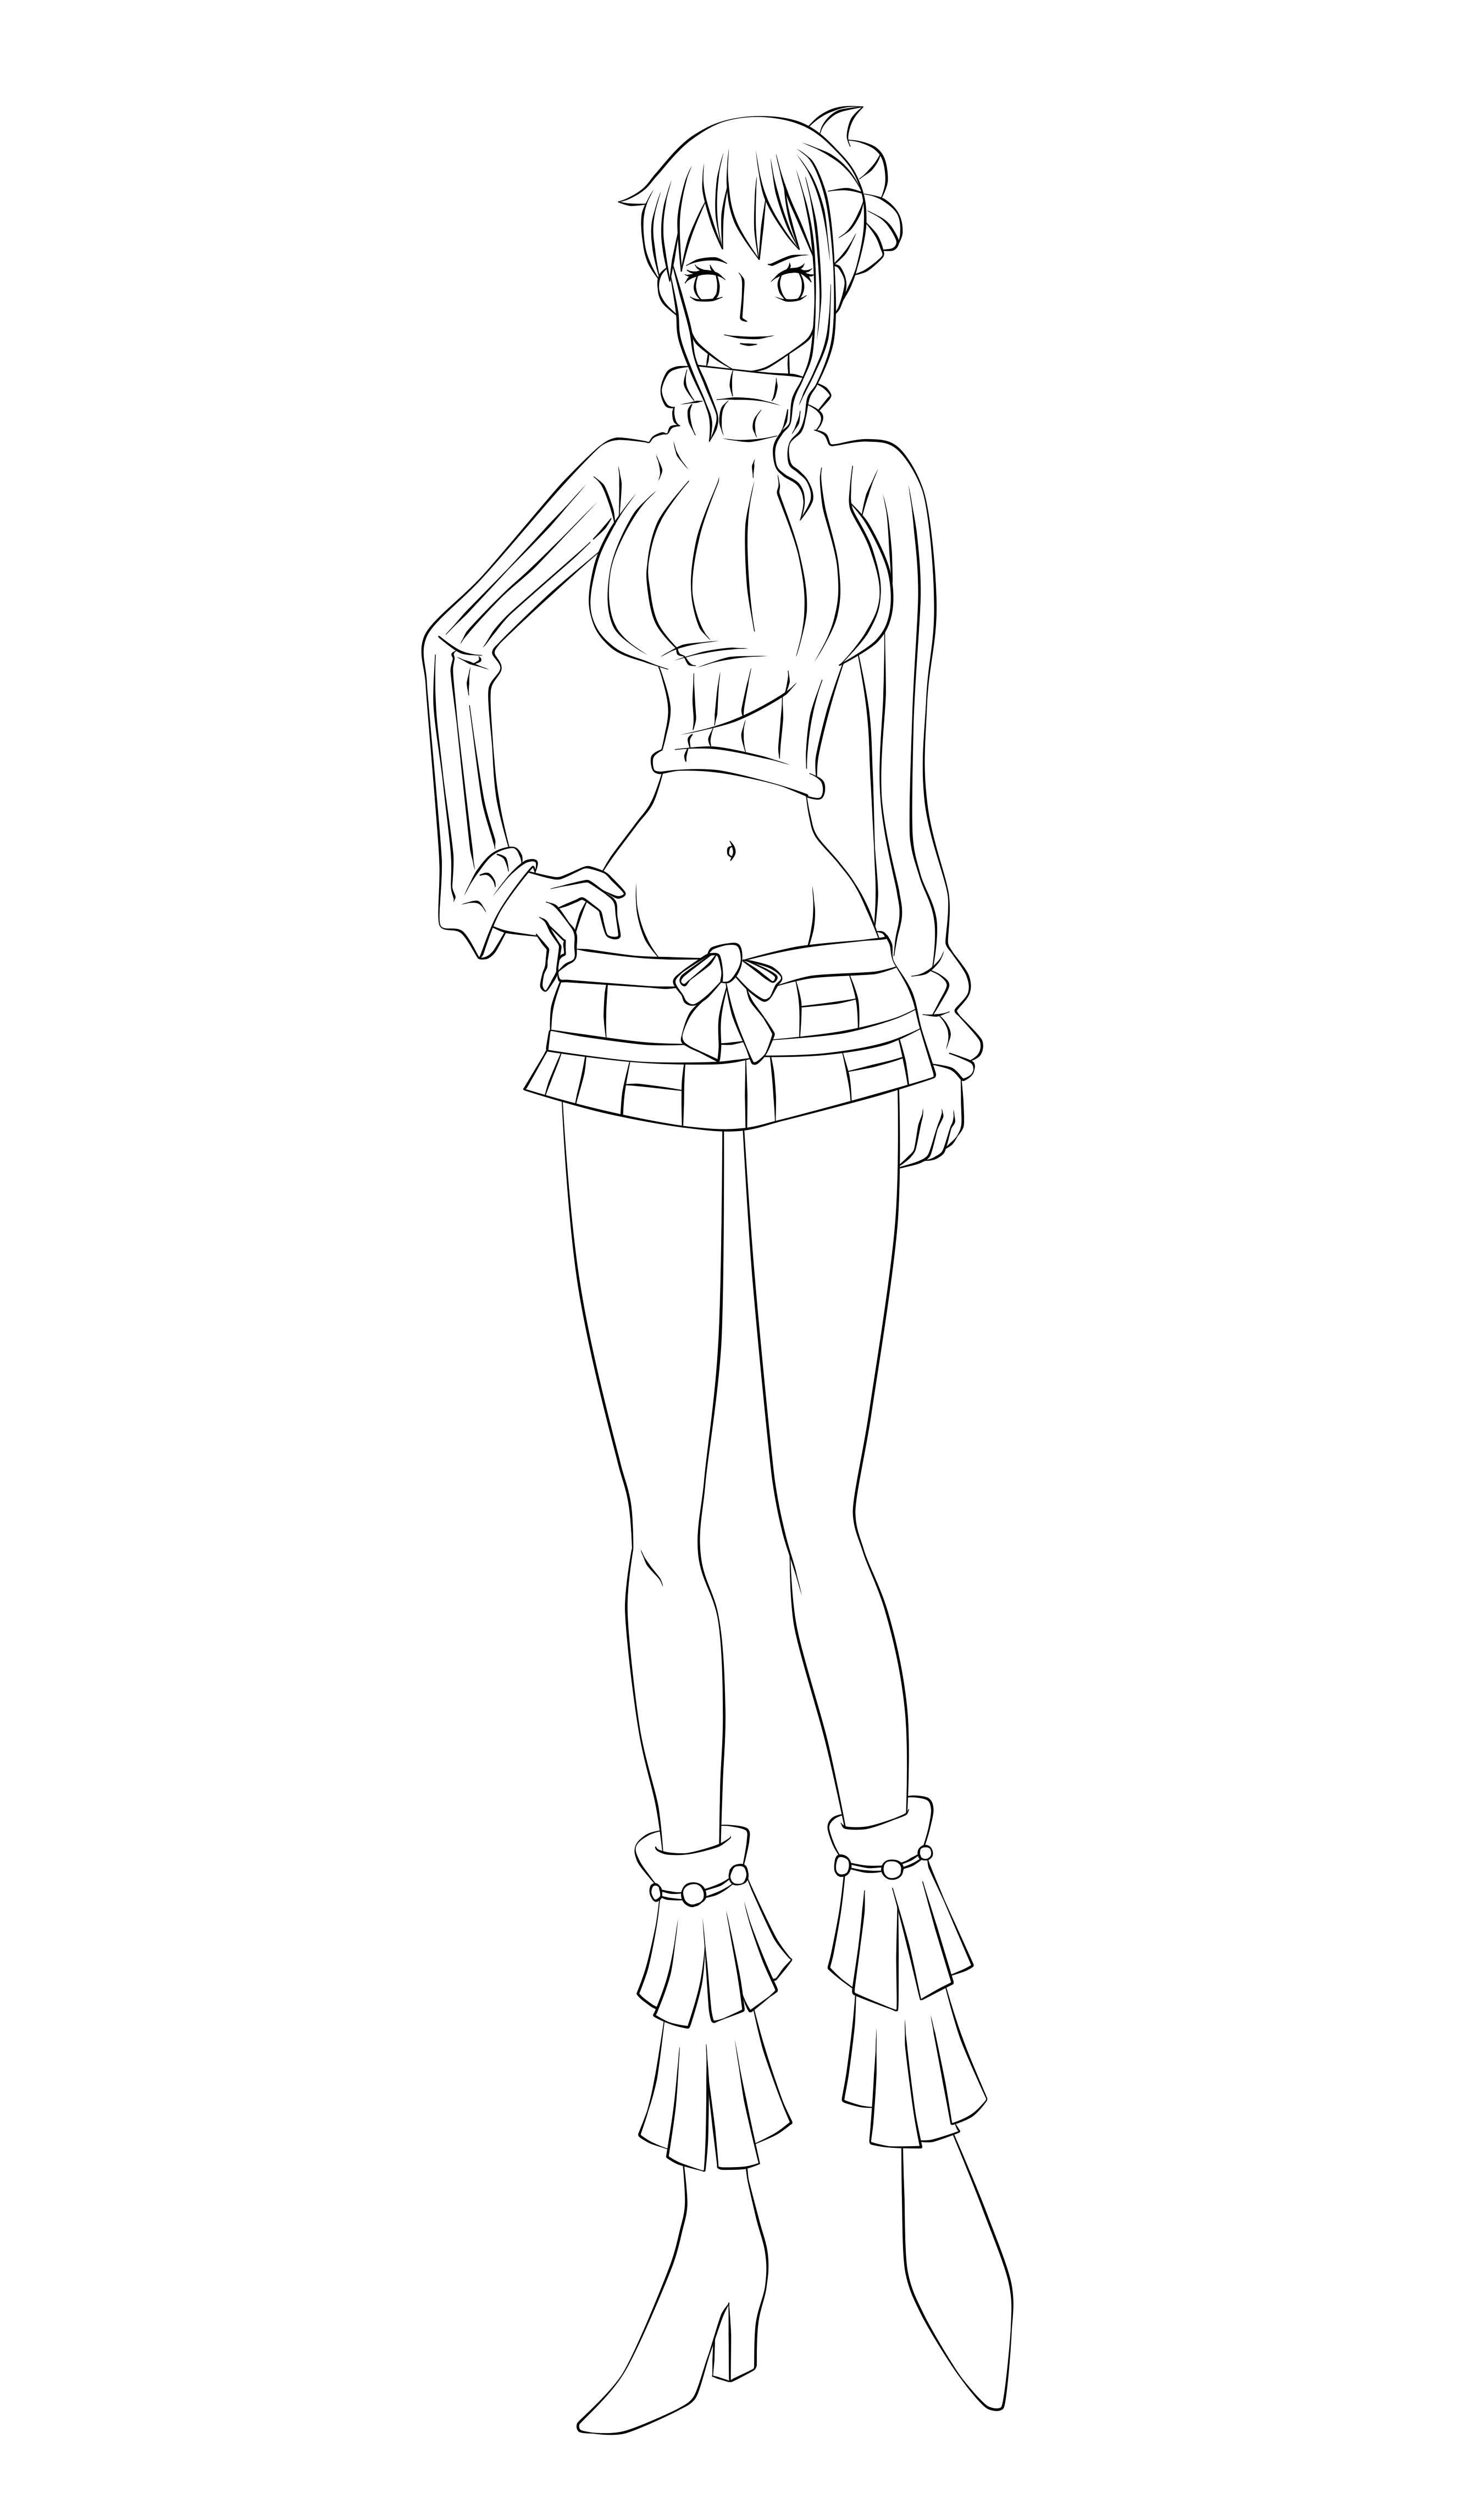 Nami Lineart : Nami lineart by caangamolineart on deviantart